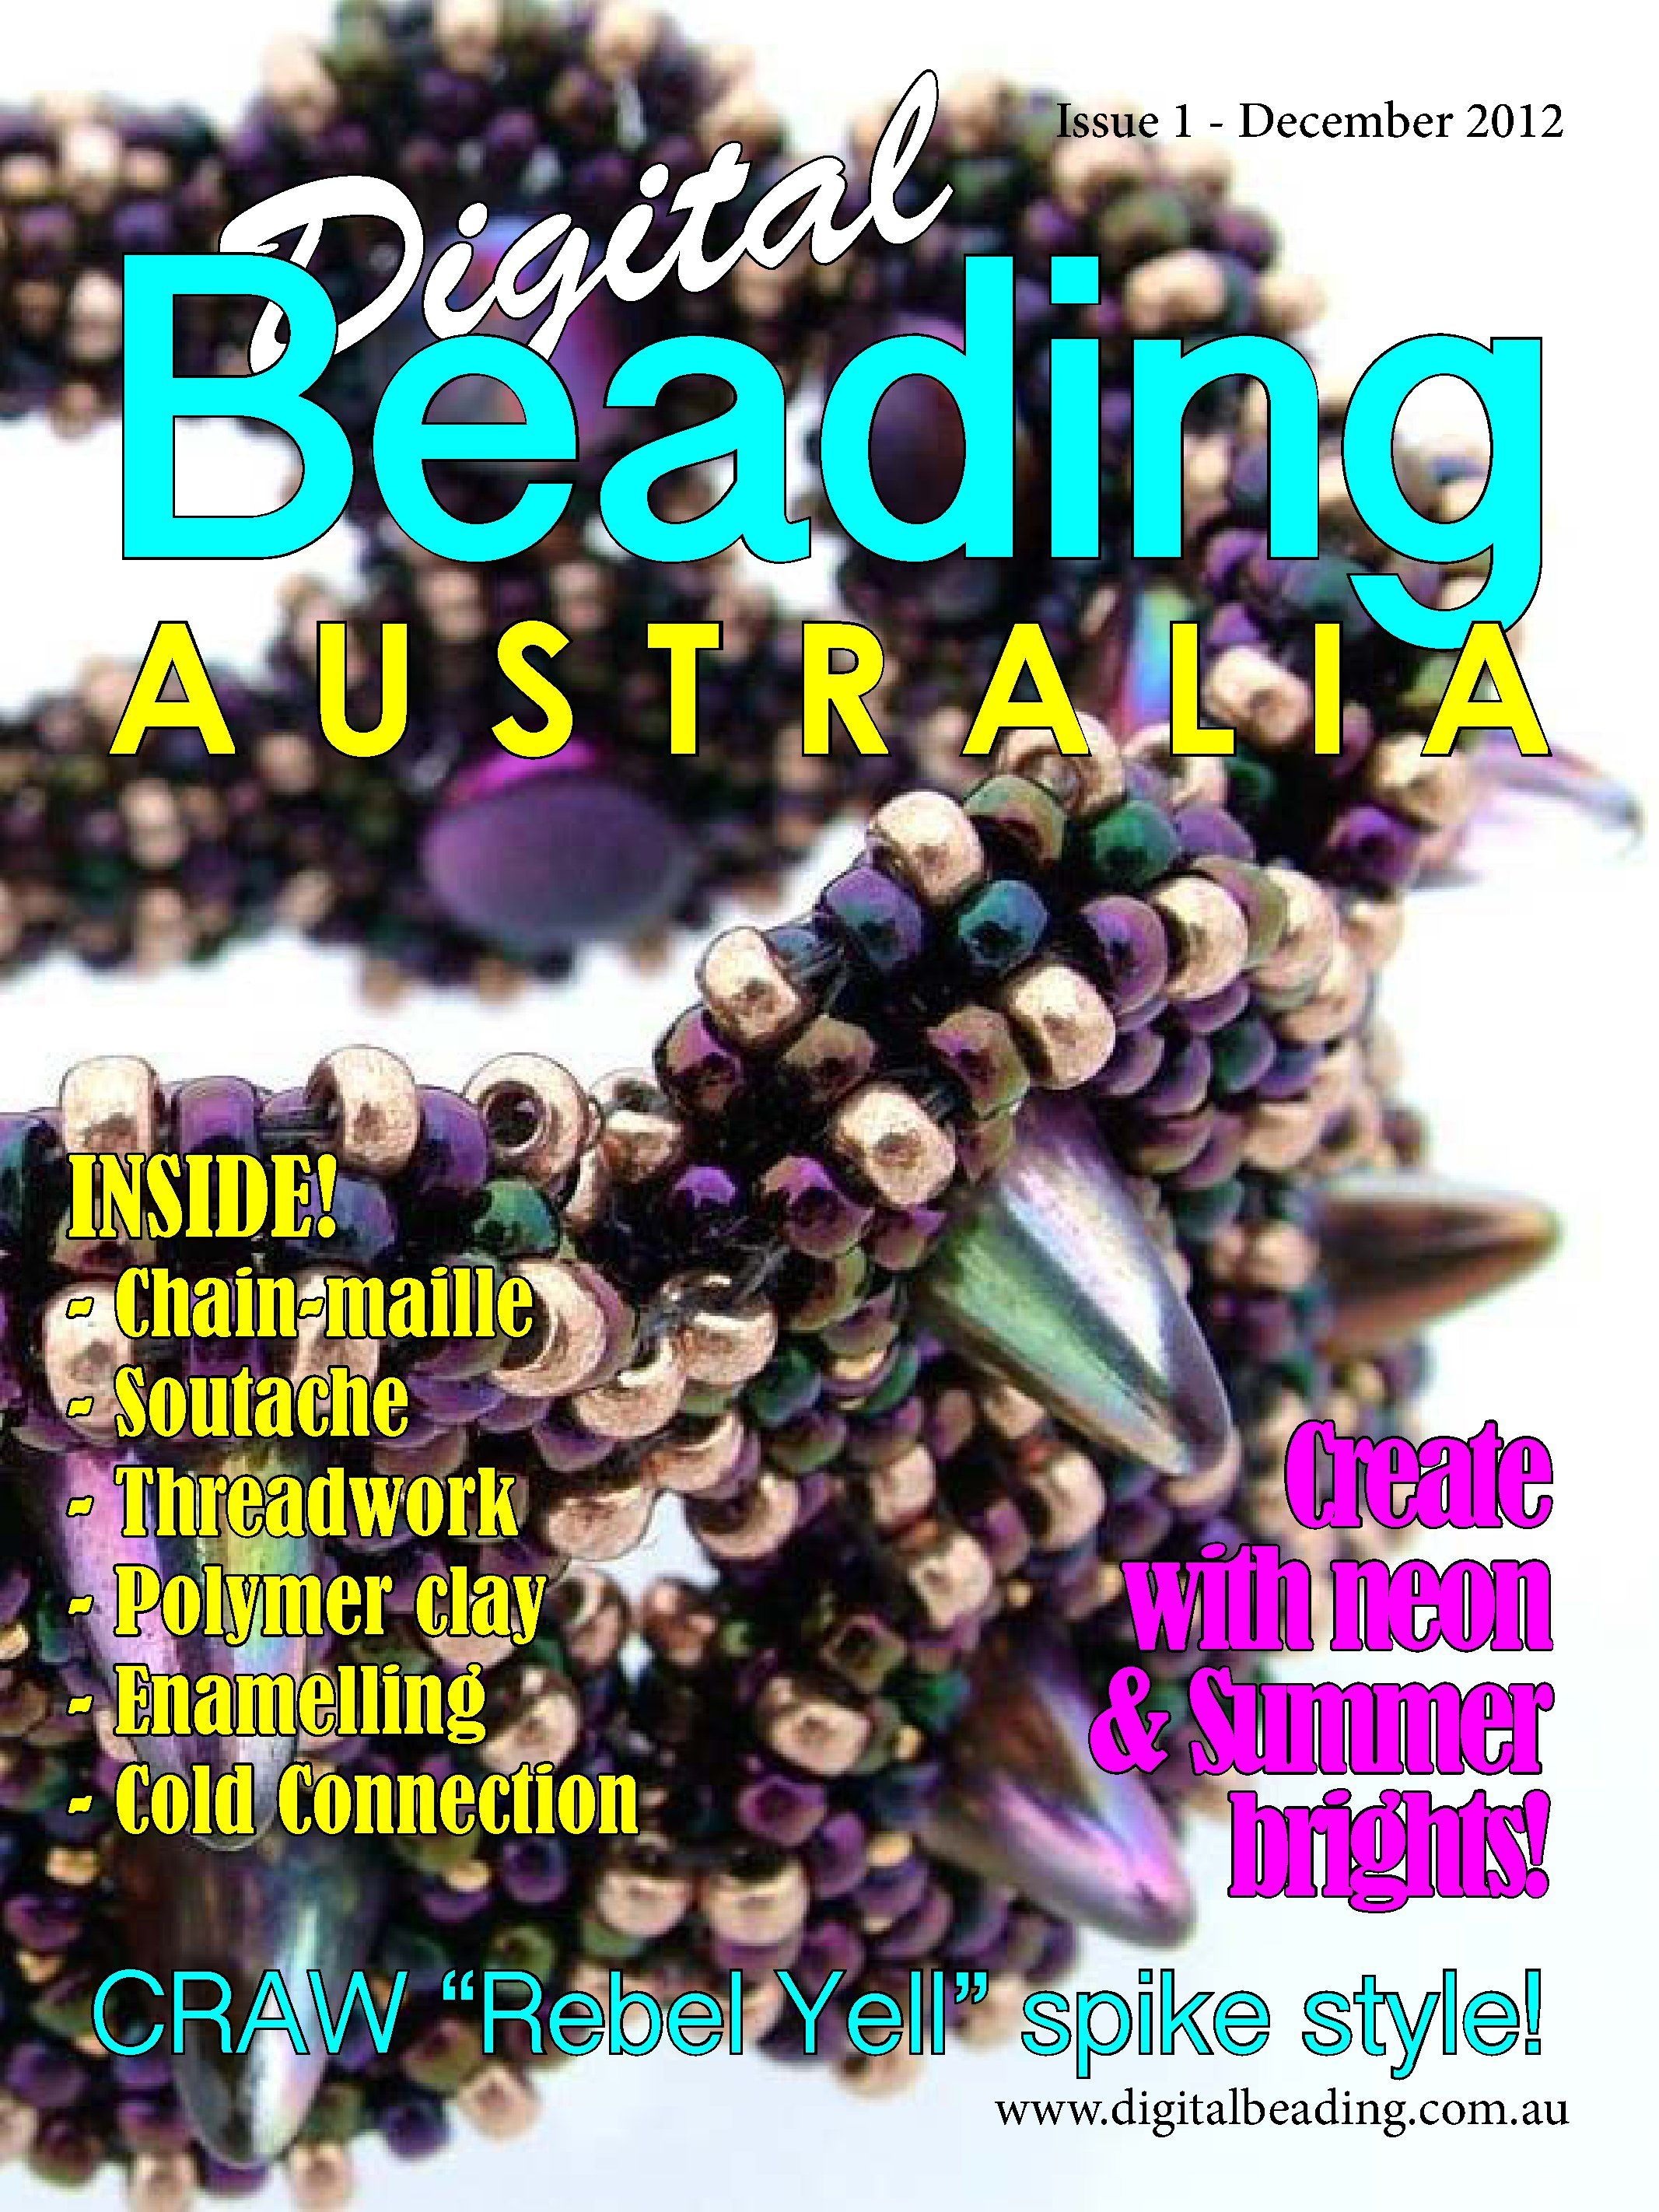 Digital Beading Australia, imgbox - fast, simple image host